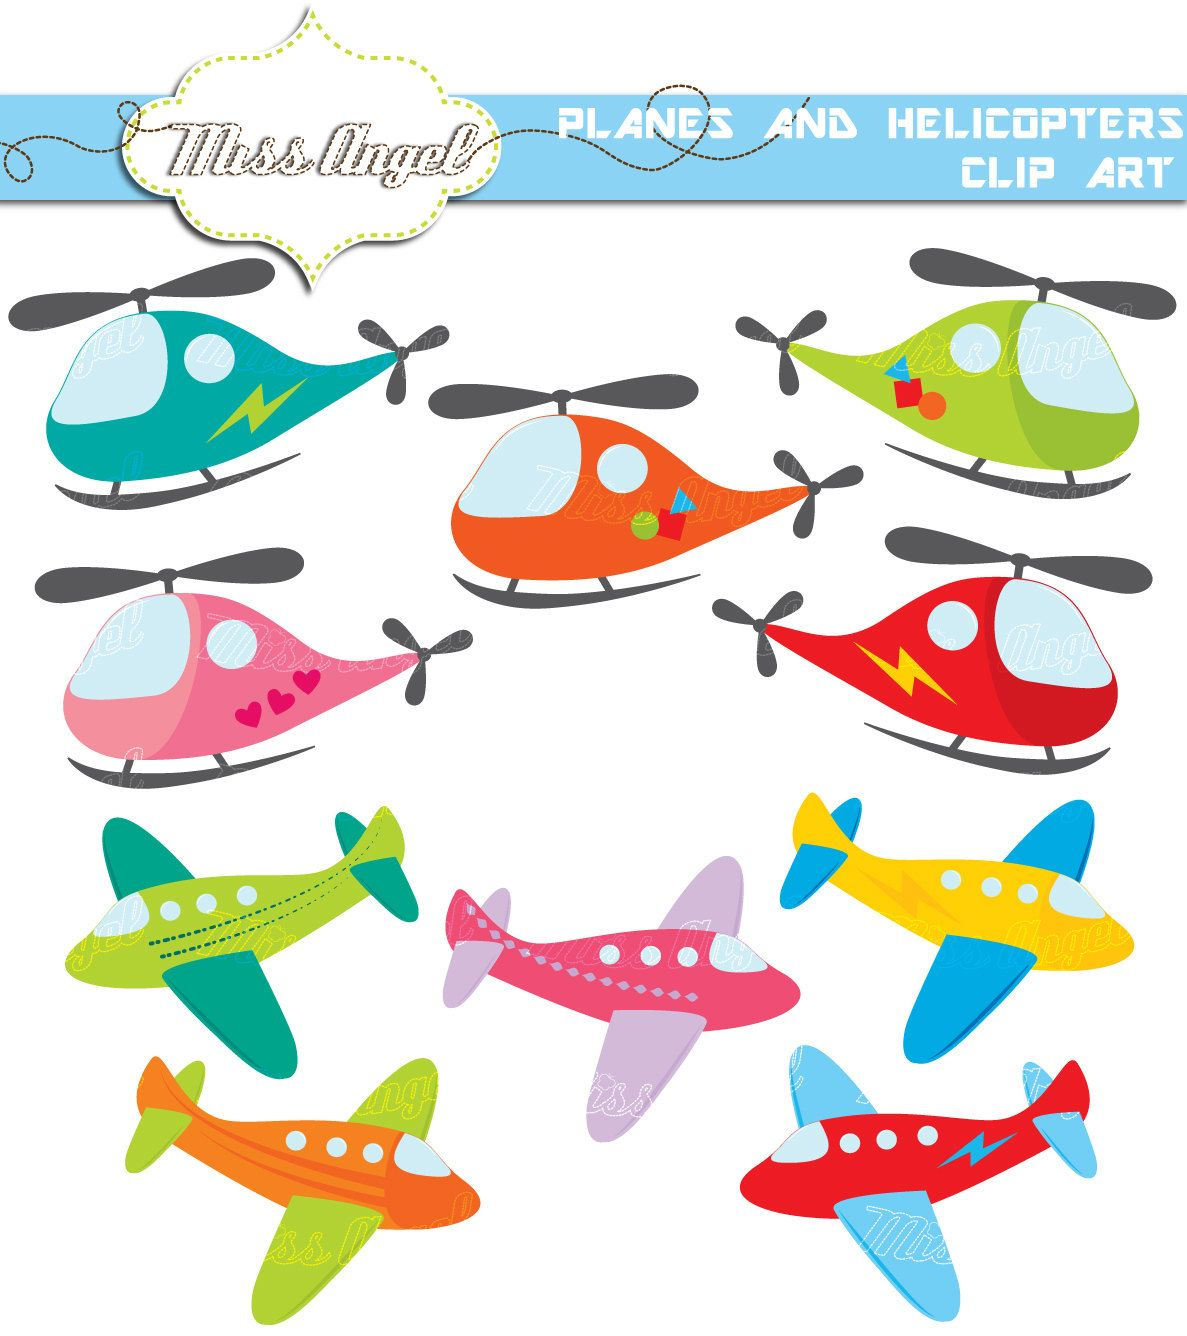 aeroplane helicopters clip art 10 cute planes and